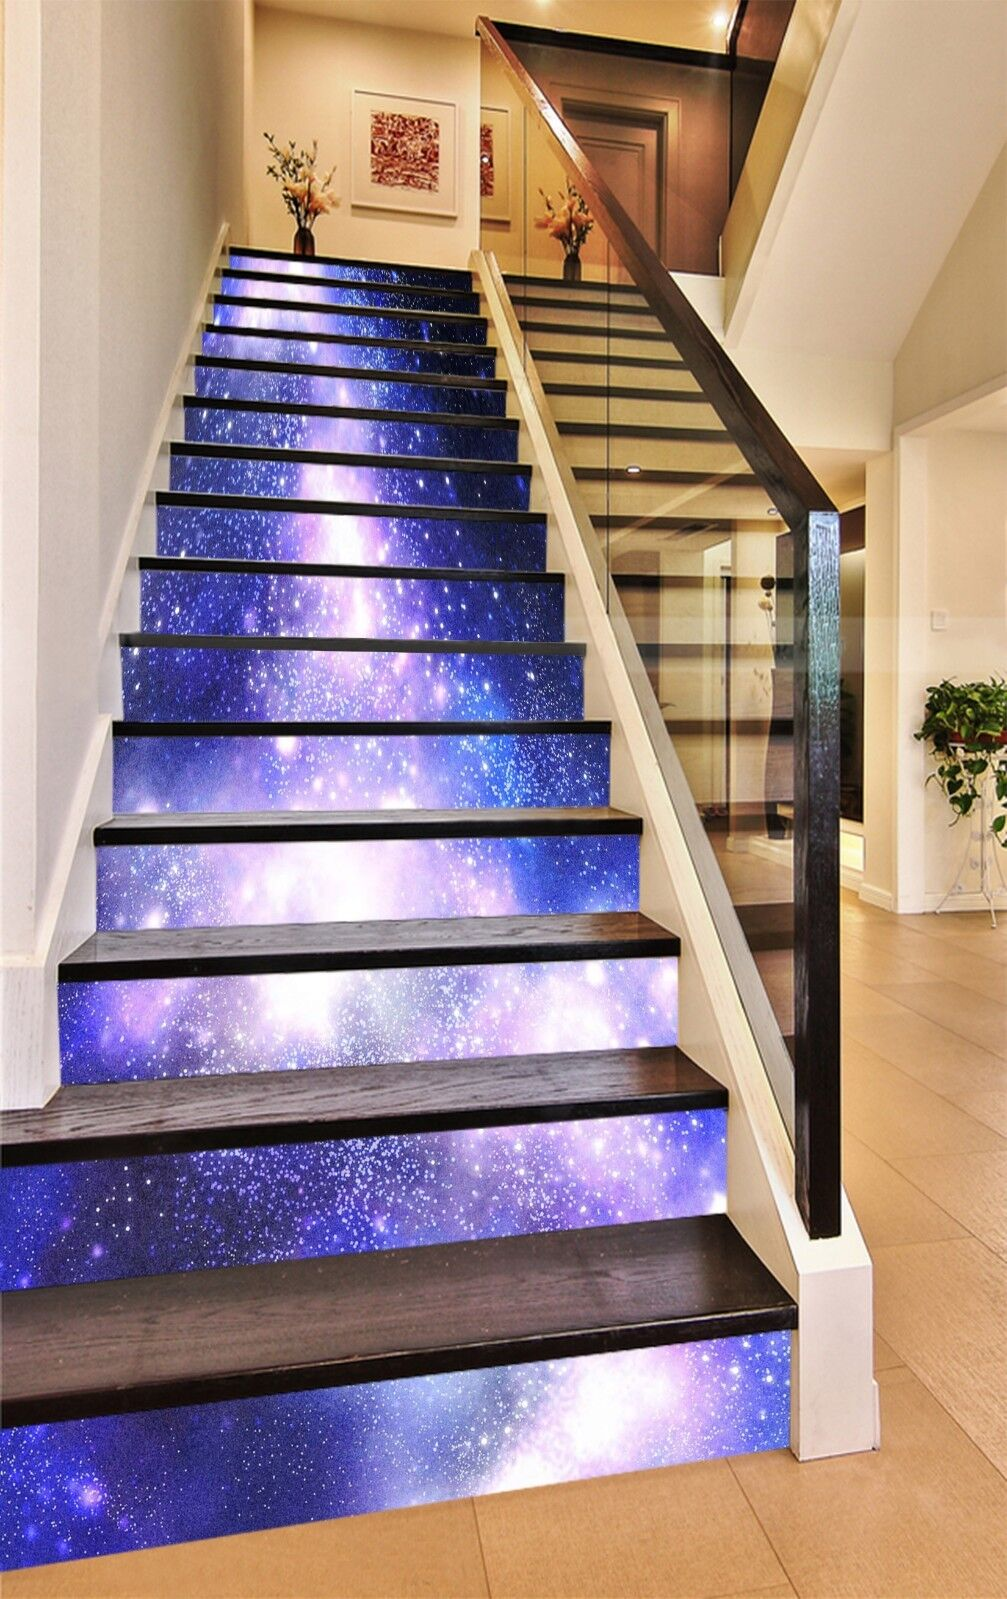 3D Starry sky 355 Stair Risers Decoration Photo Mural Vinyl Decal Wallpaper UK